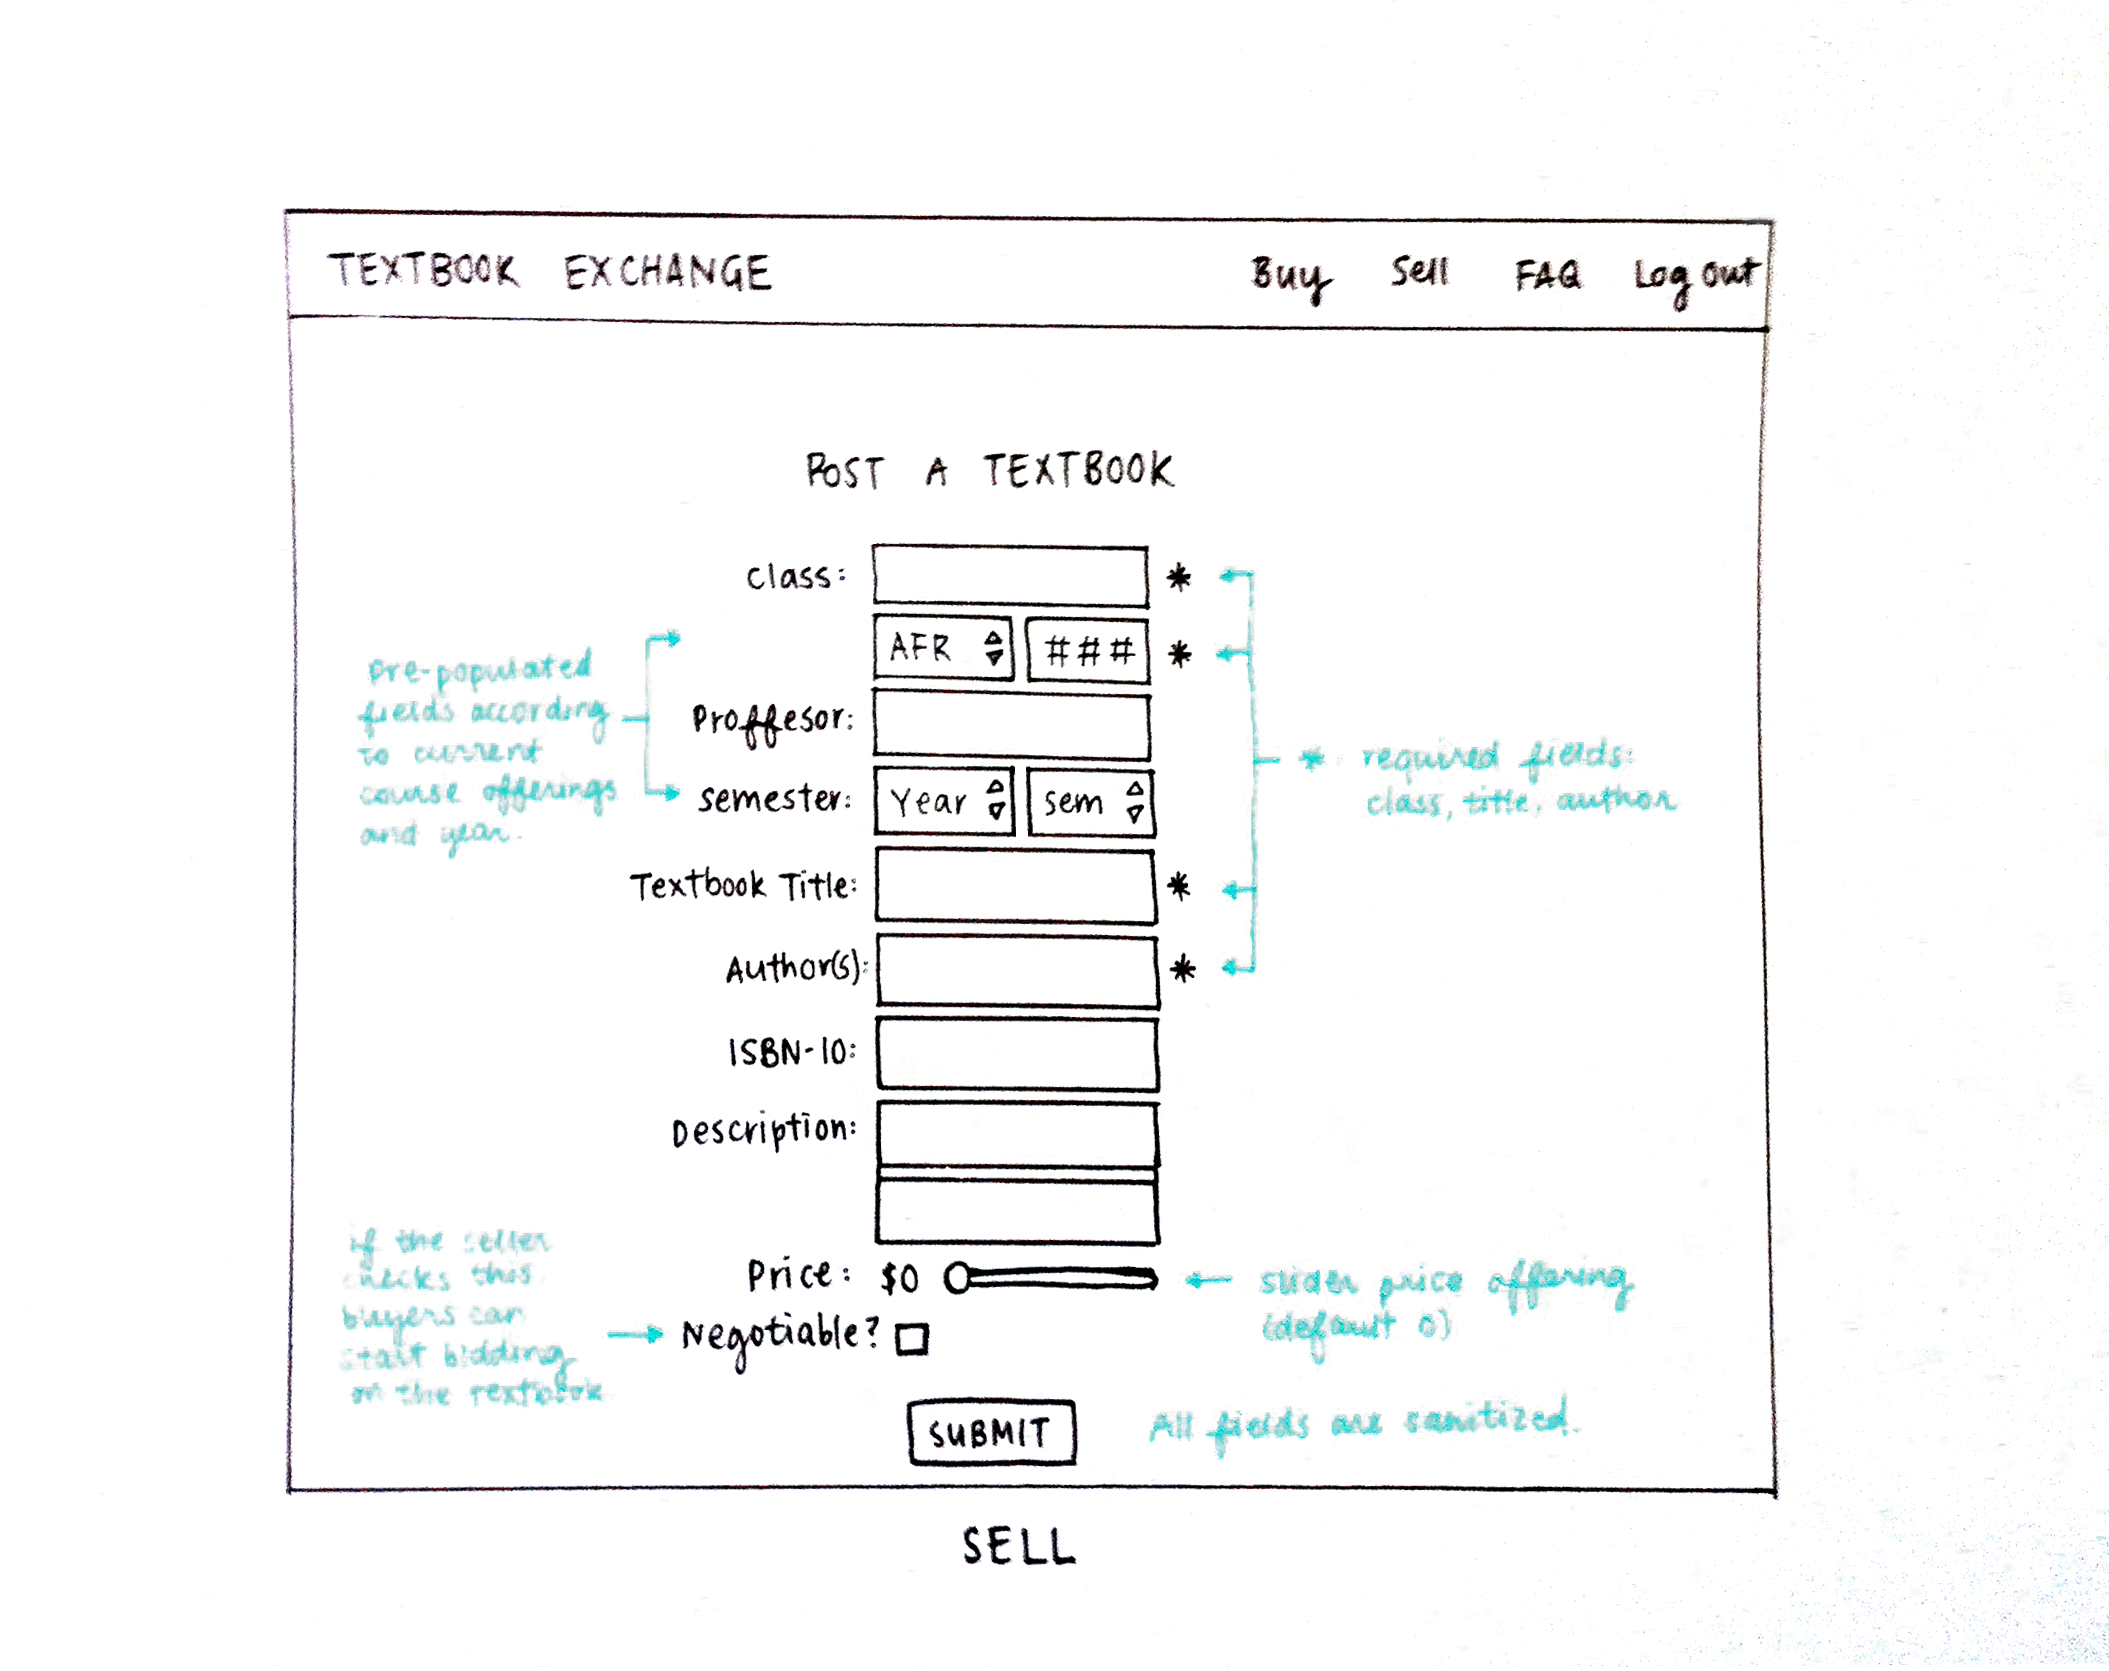 TE-wireframe_0001_sell.png